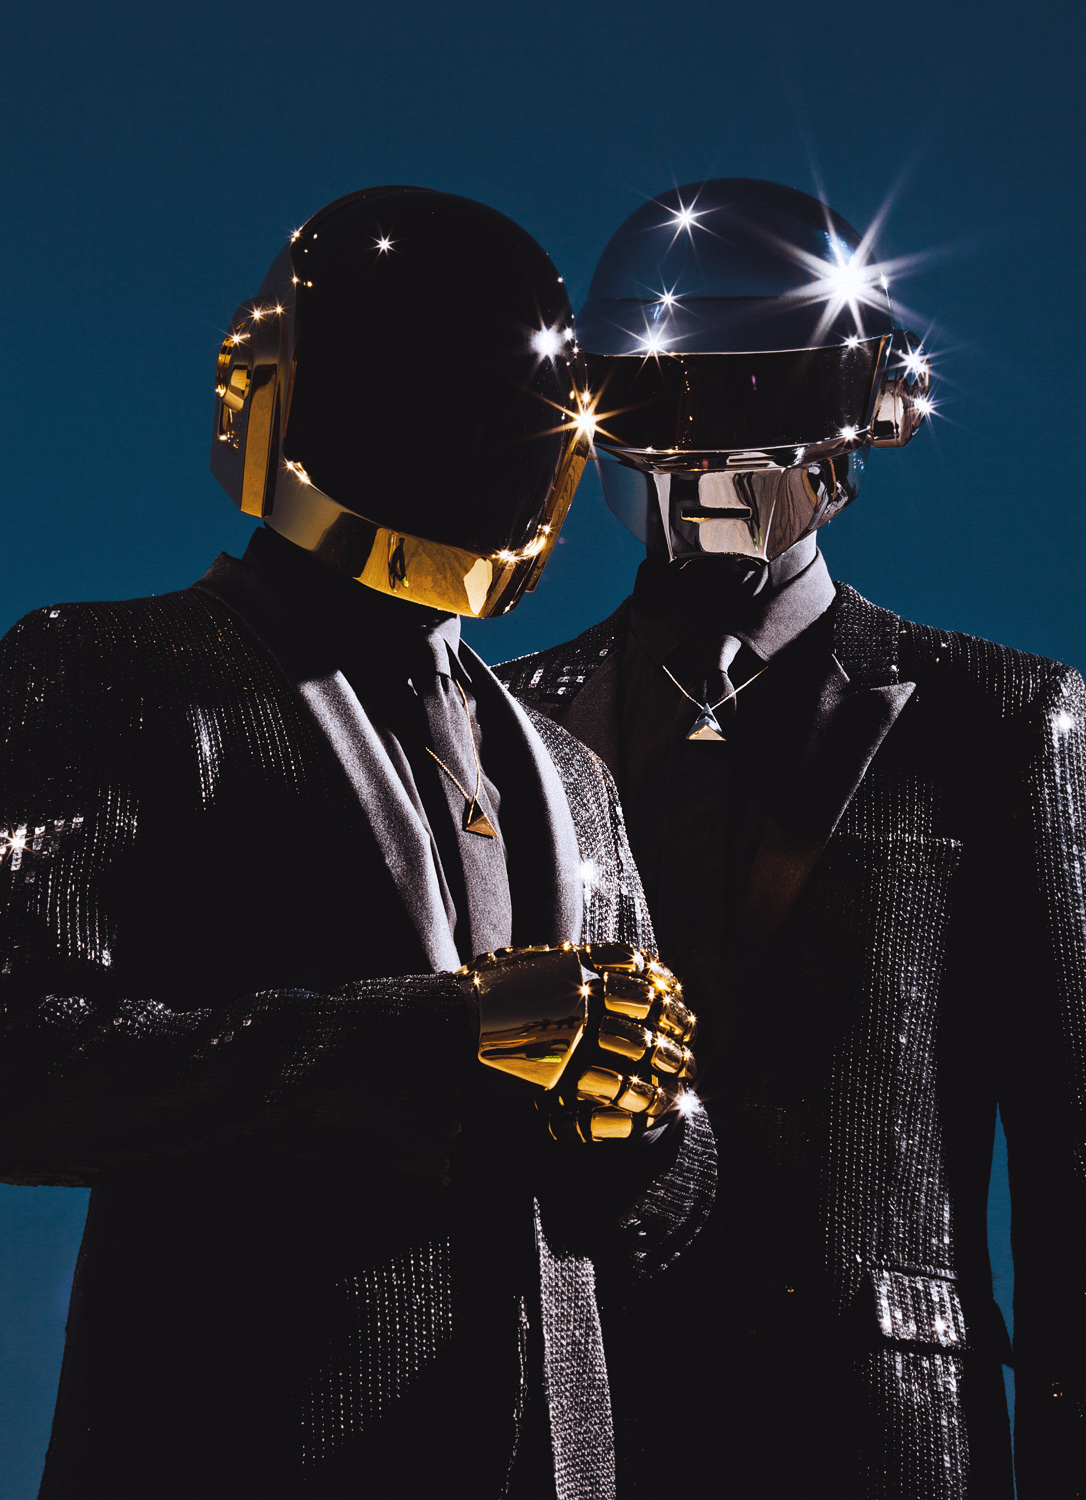 Daft Punk wallpapers, Music, HQ Daft Punk pictures | 4K ...